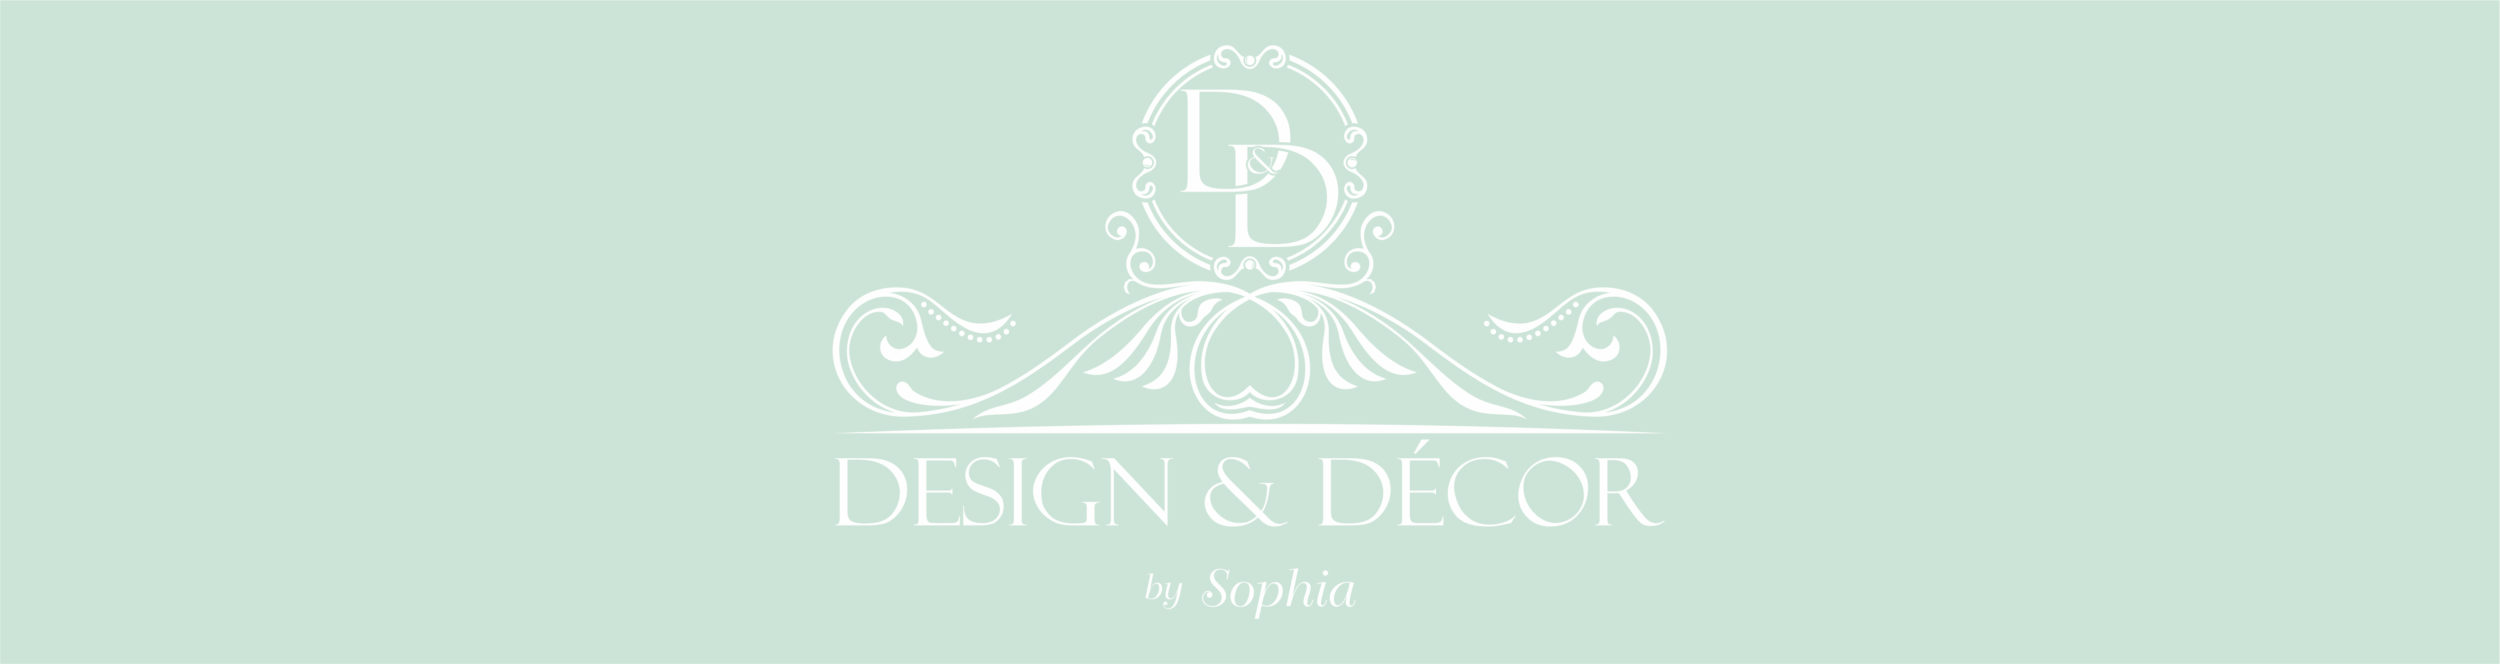 Design & Décor